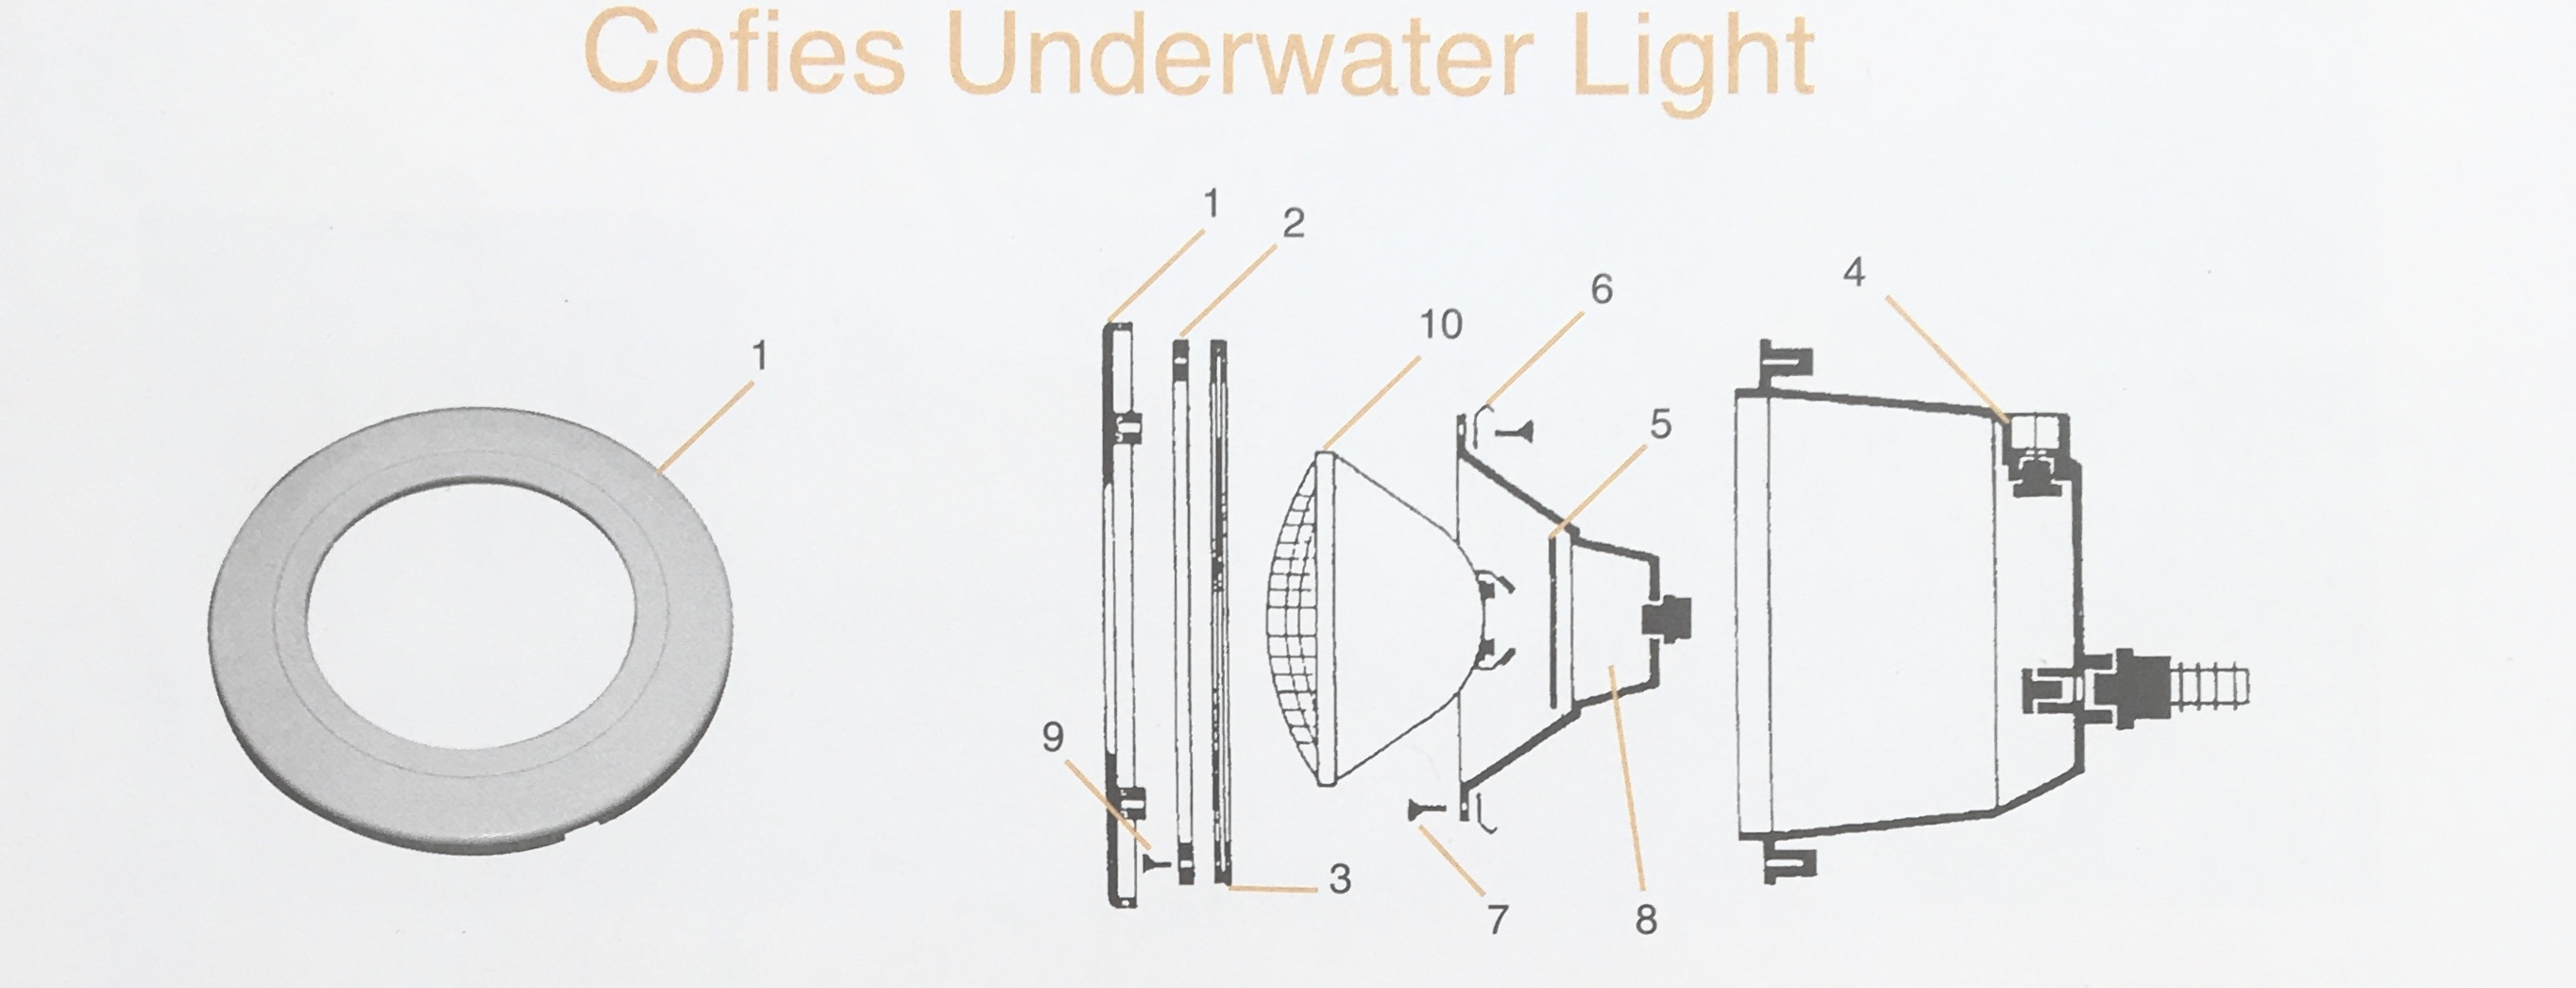 Cofies Underwater LightParts